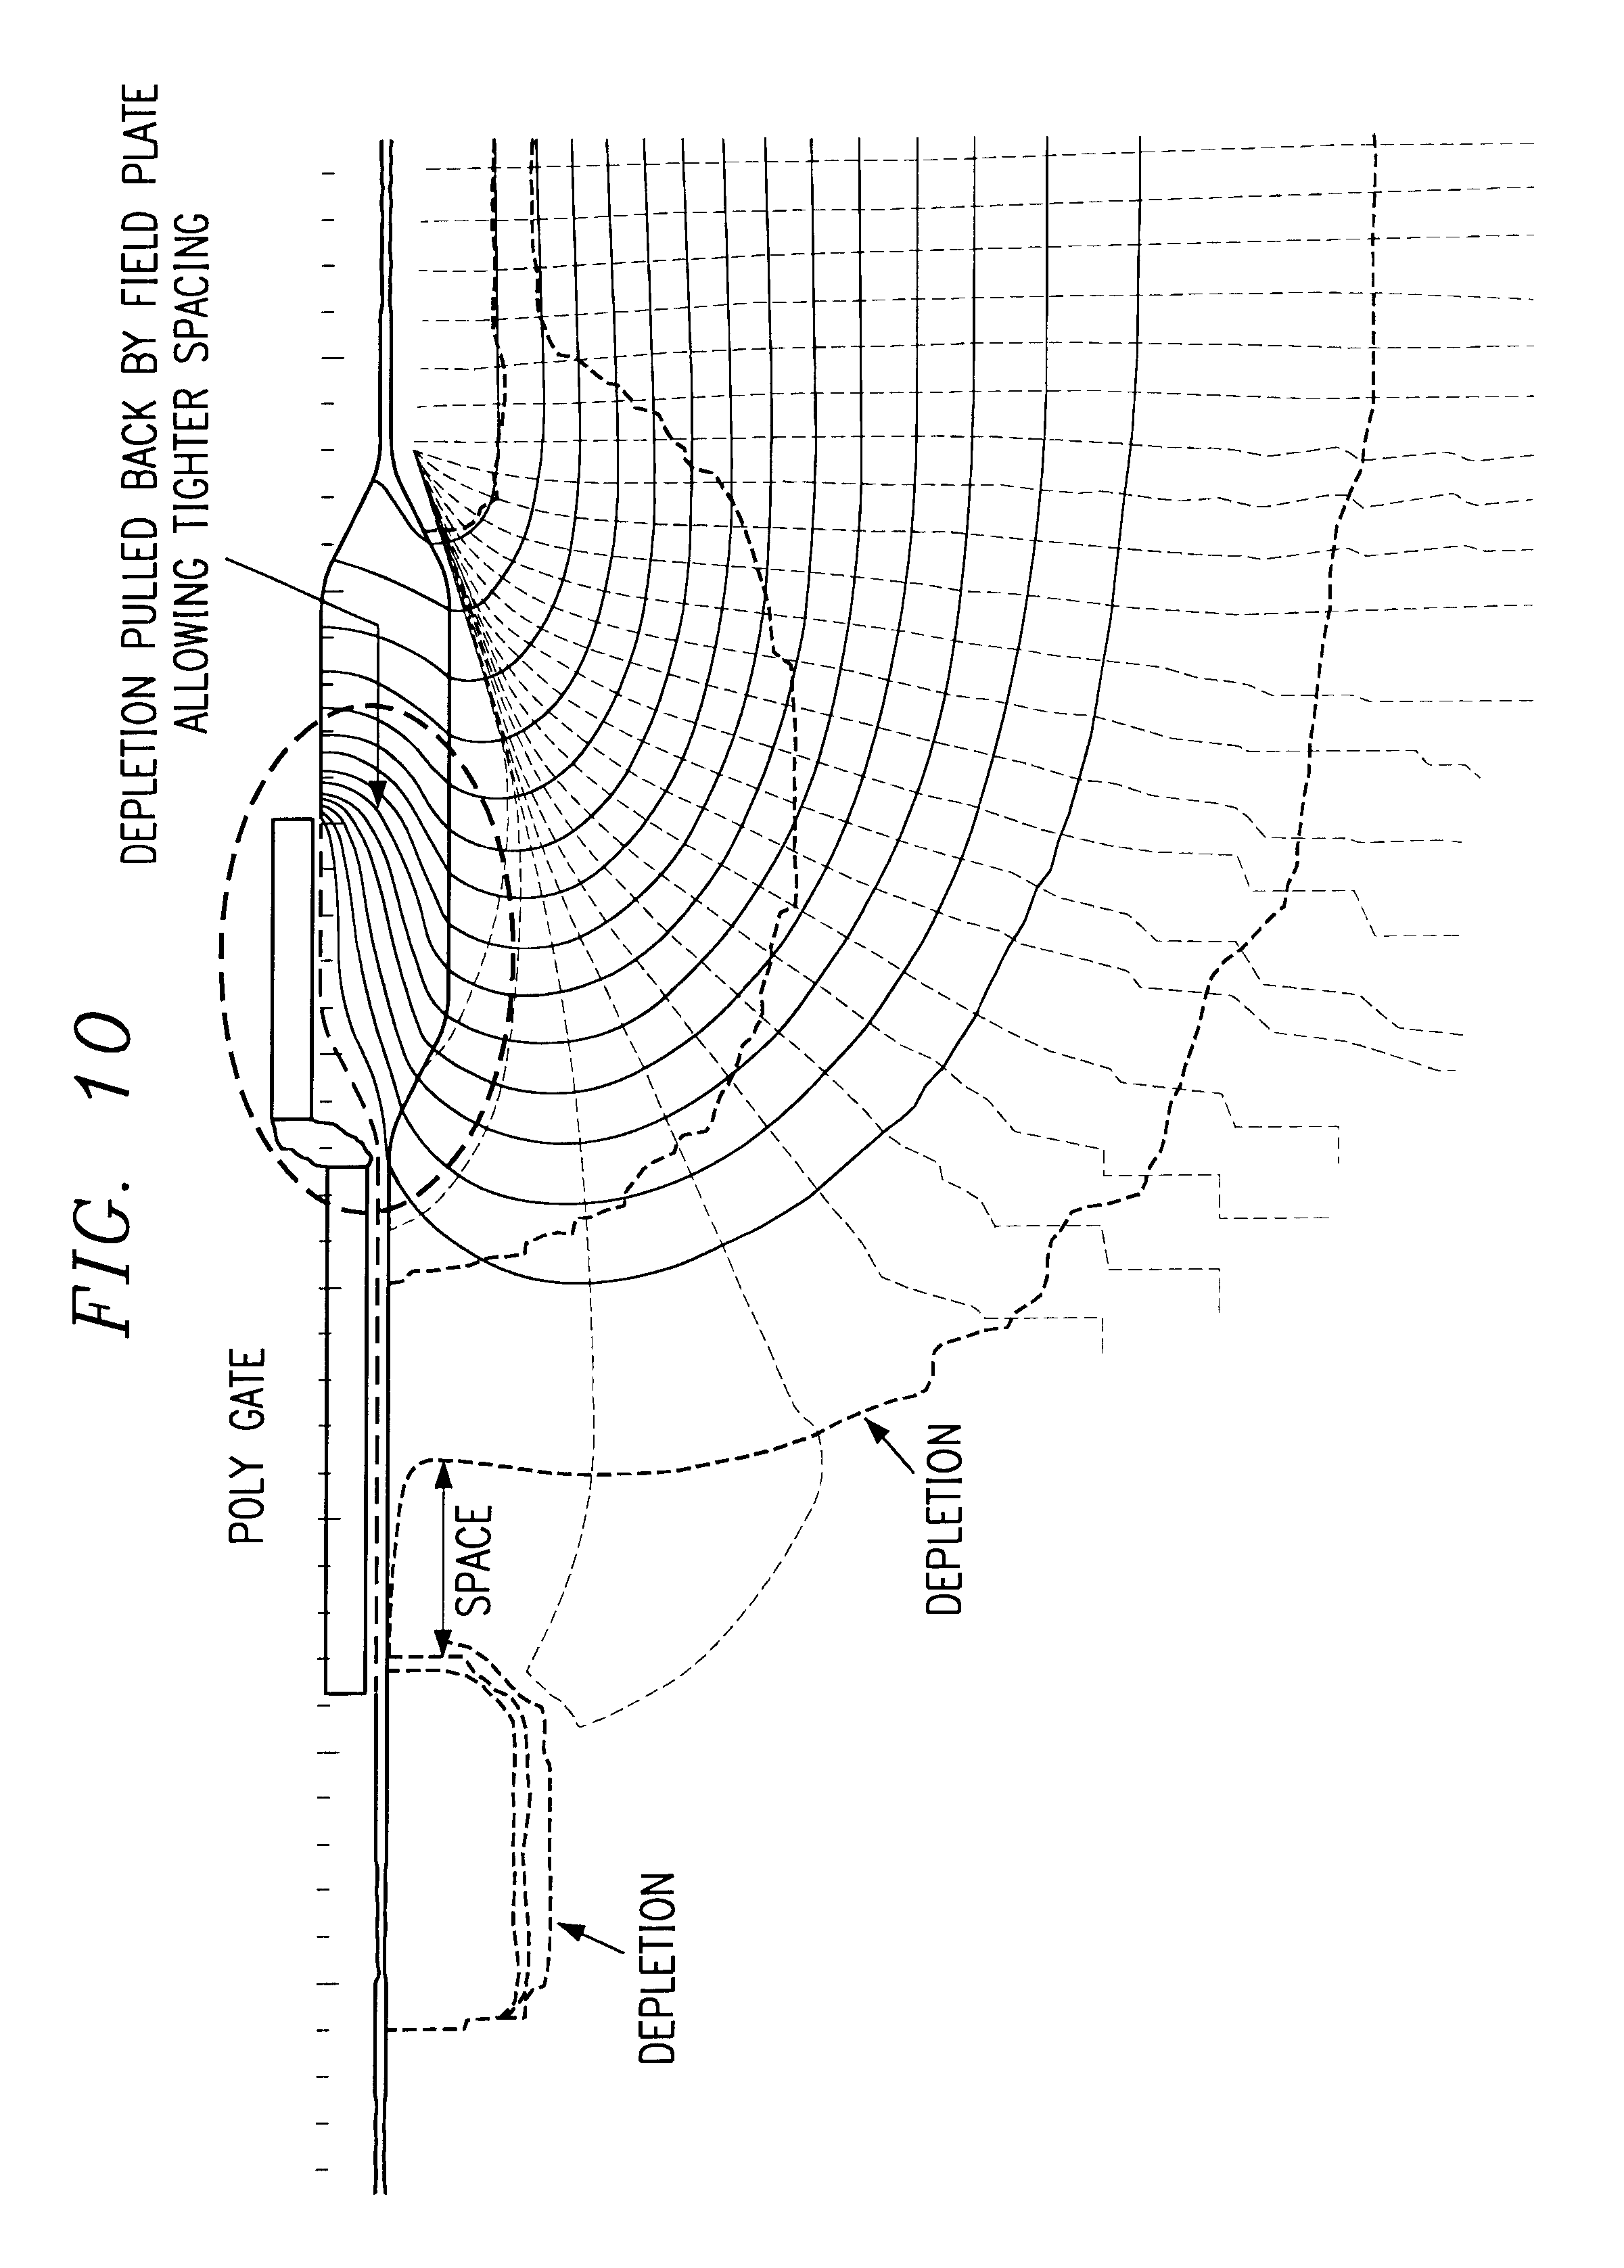 Patent US6531355 - LDMOS device with self-aligned RESURF region